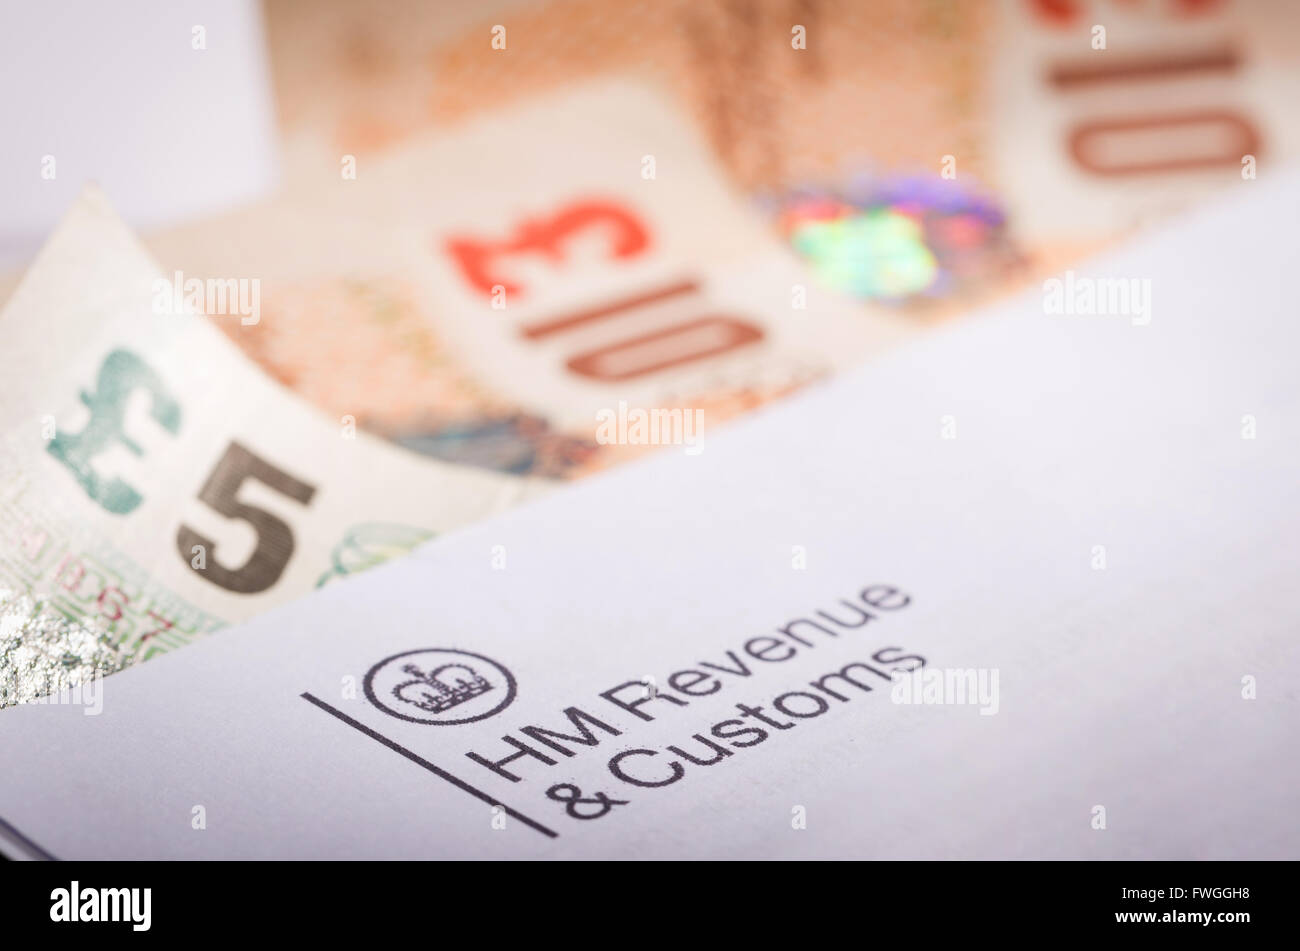 Inland Revenue tax letter with money - Stock Image